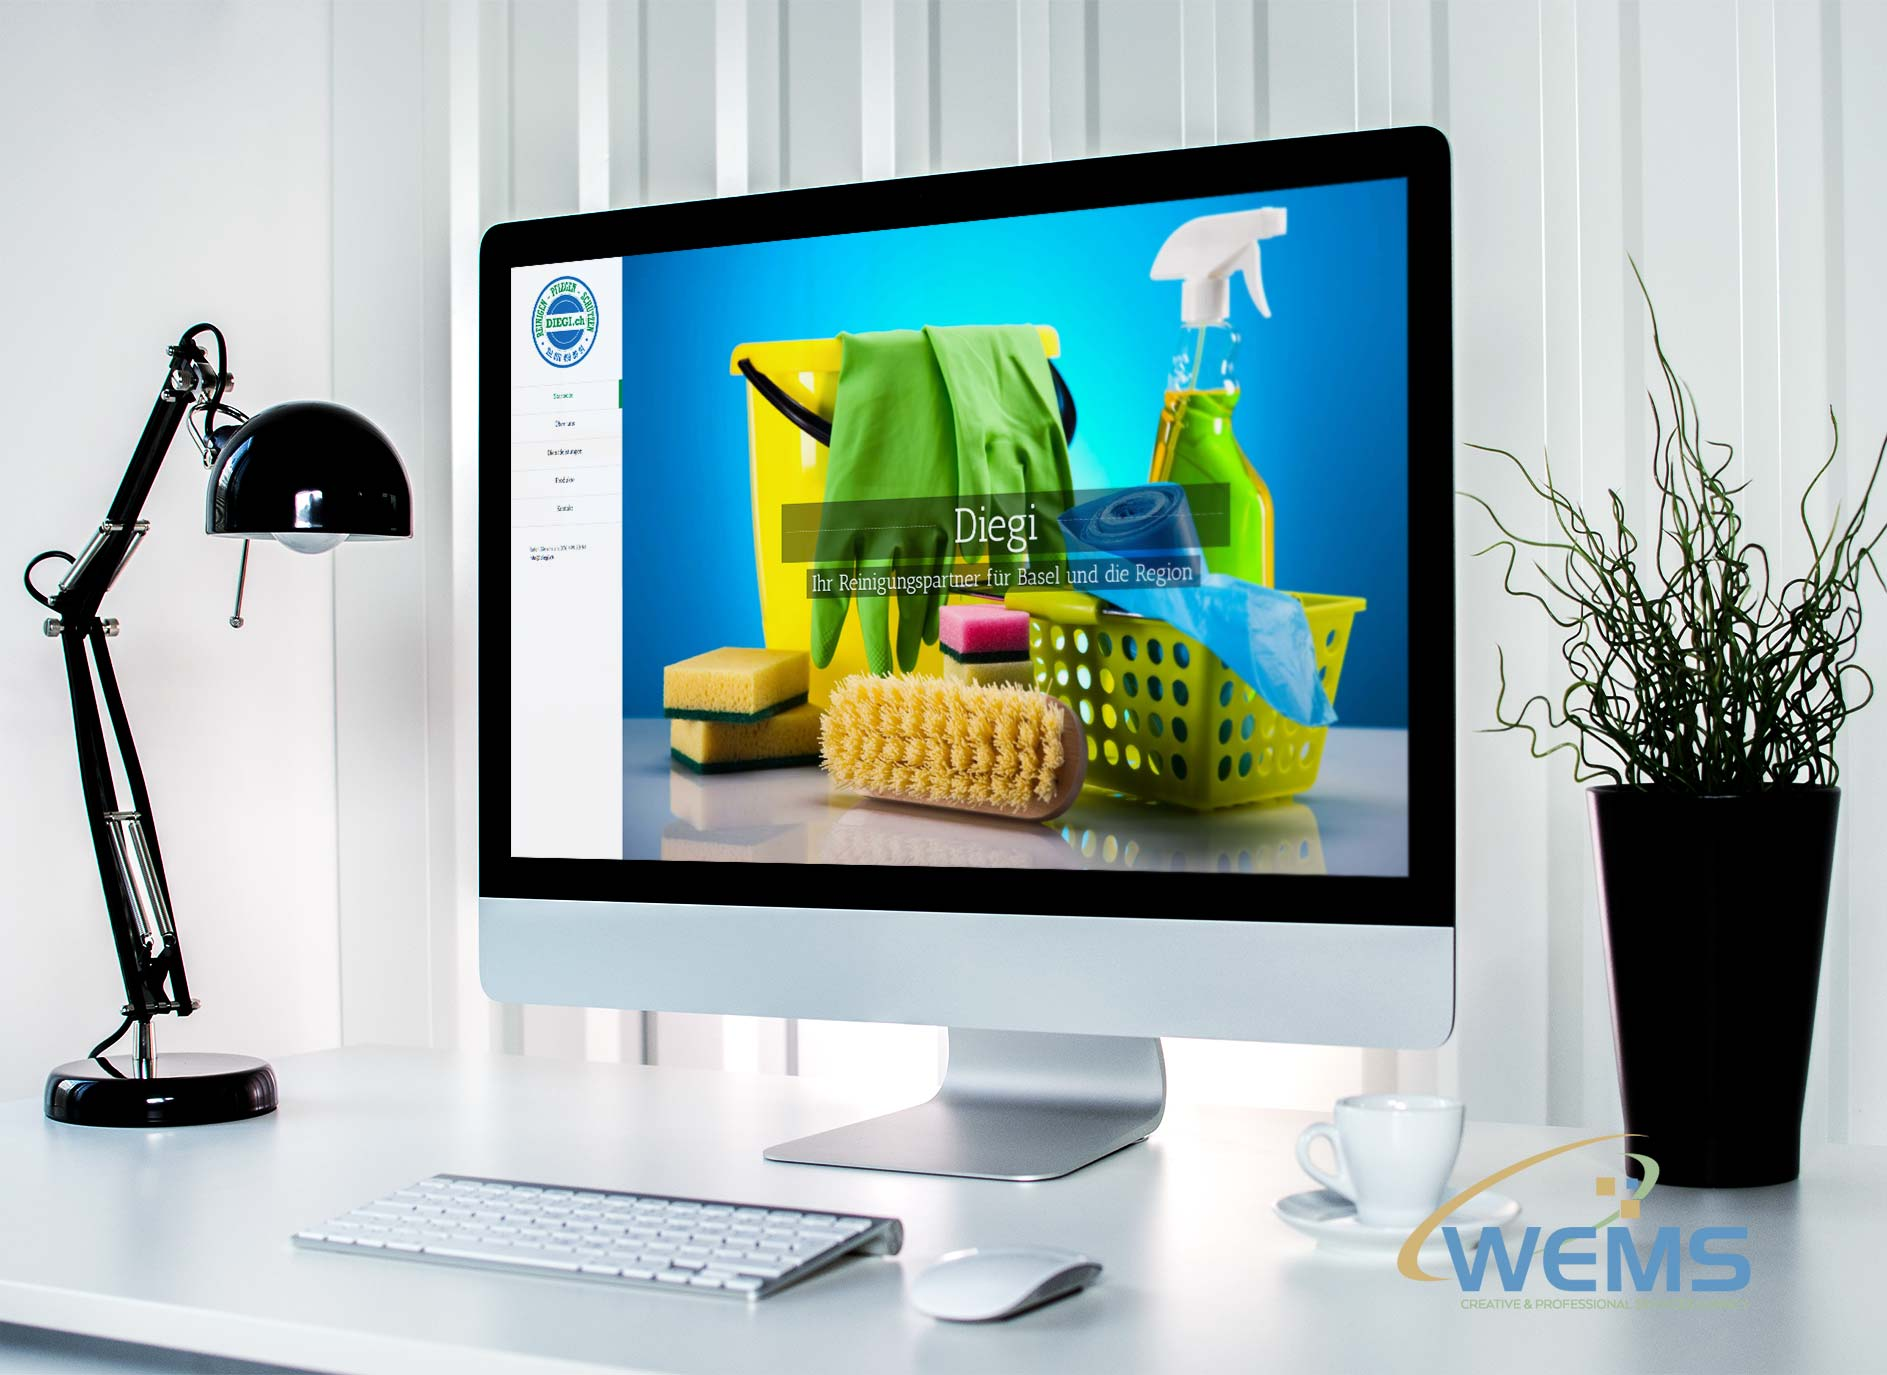 wems agency webdesign mockup diegi 2 - Webdesign Agency with search engine optimization (SEO)